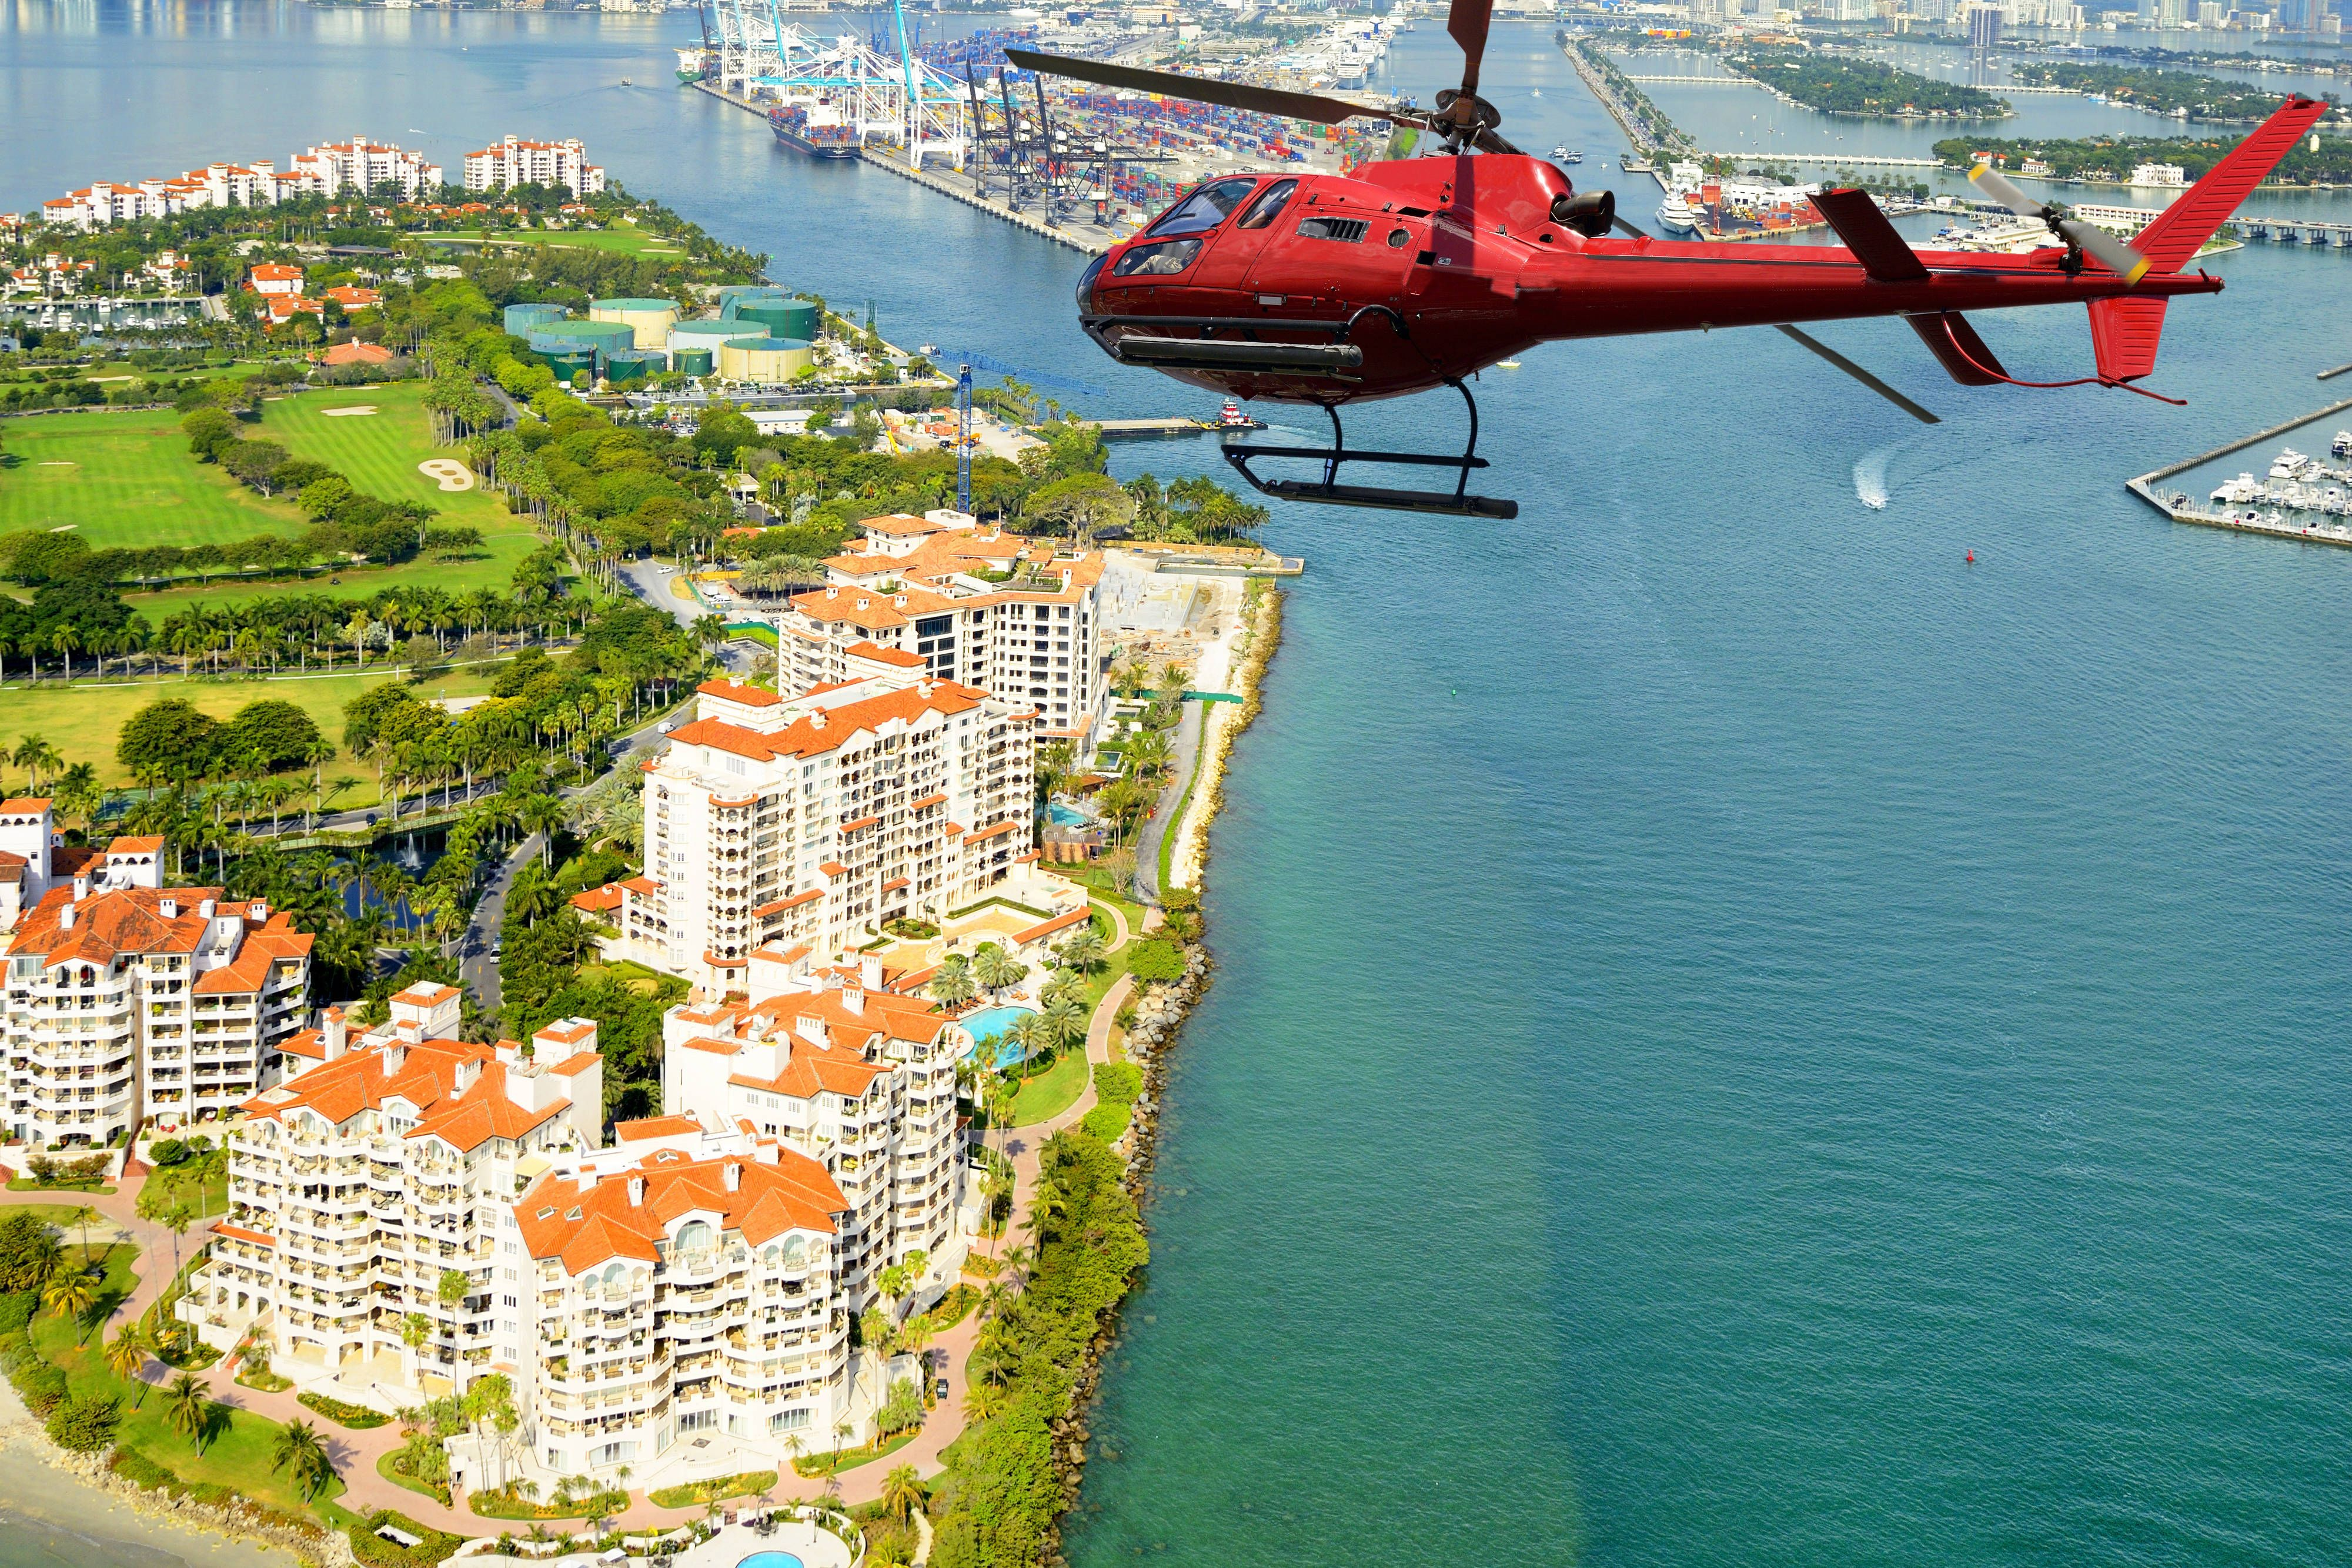 Courtyard Miami Coconut Grove Helicopter Tour Over Miami